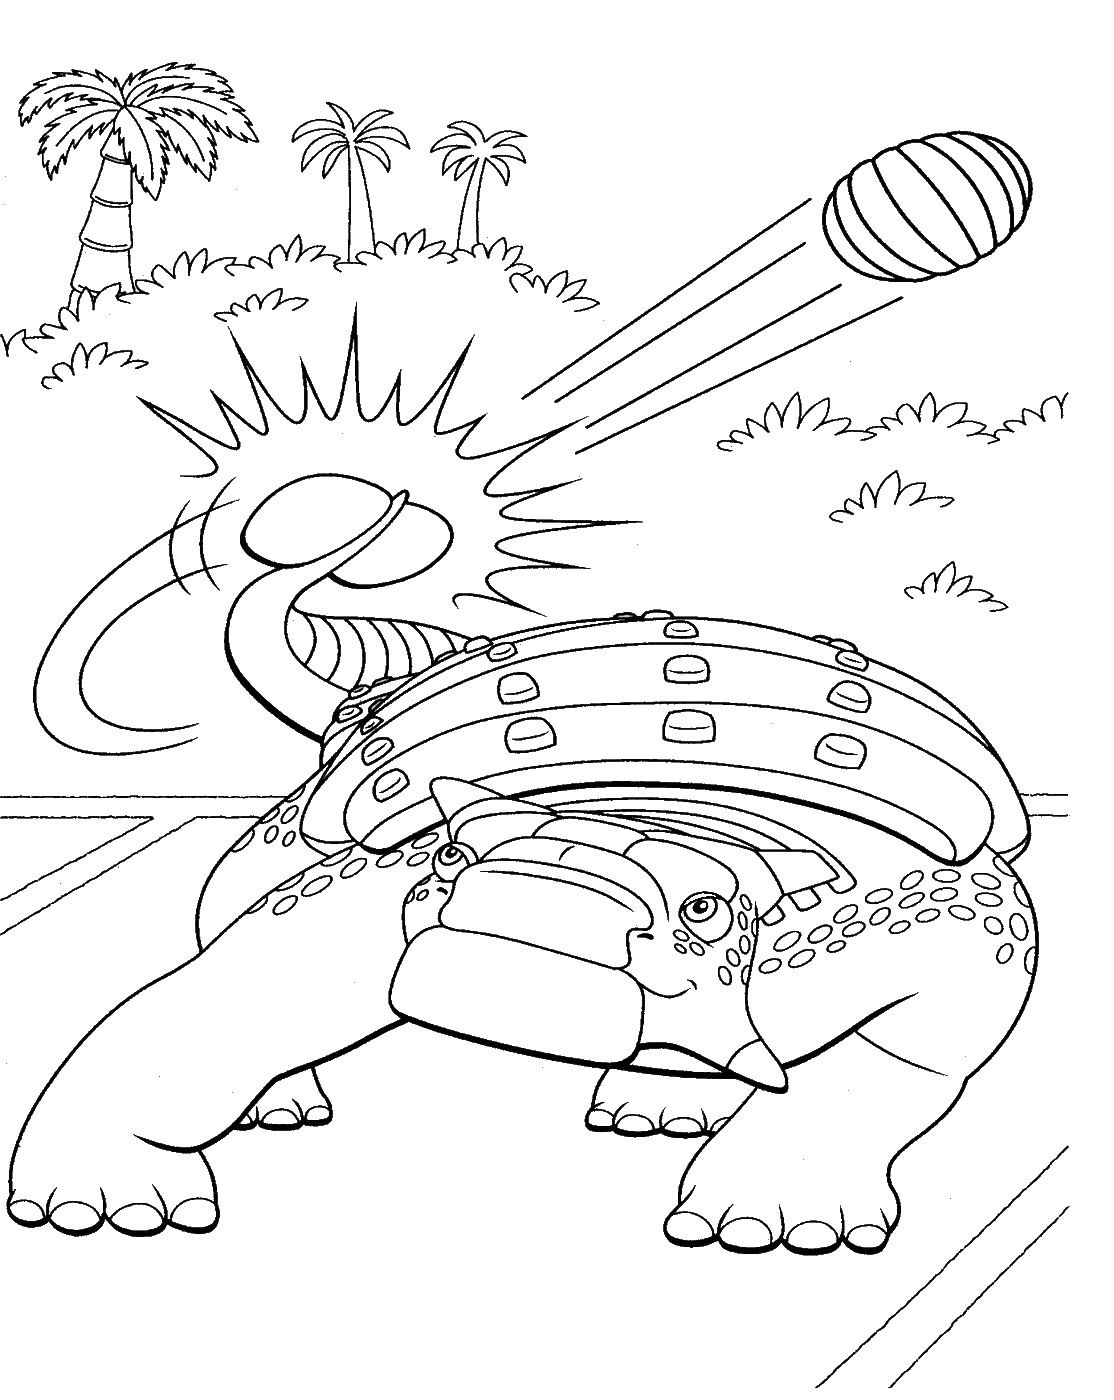 dinosaur printables dinosaur train coloring pages dinosaur printables 1 1